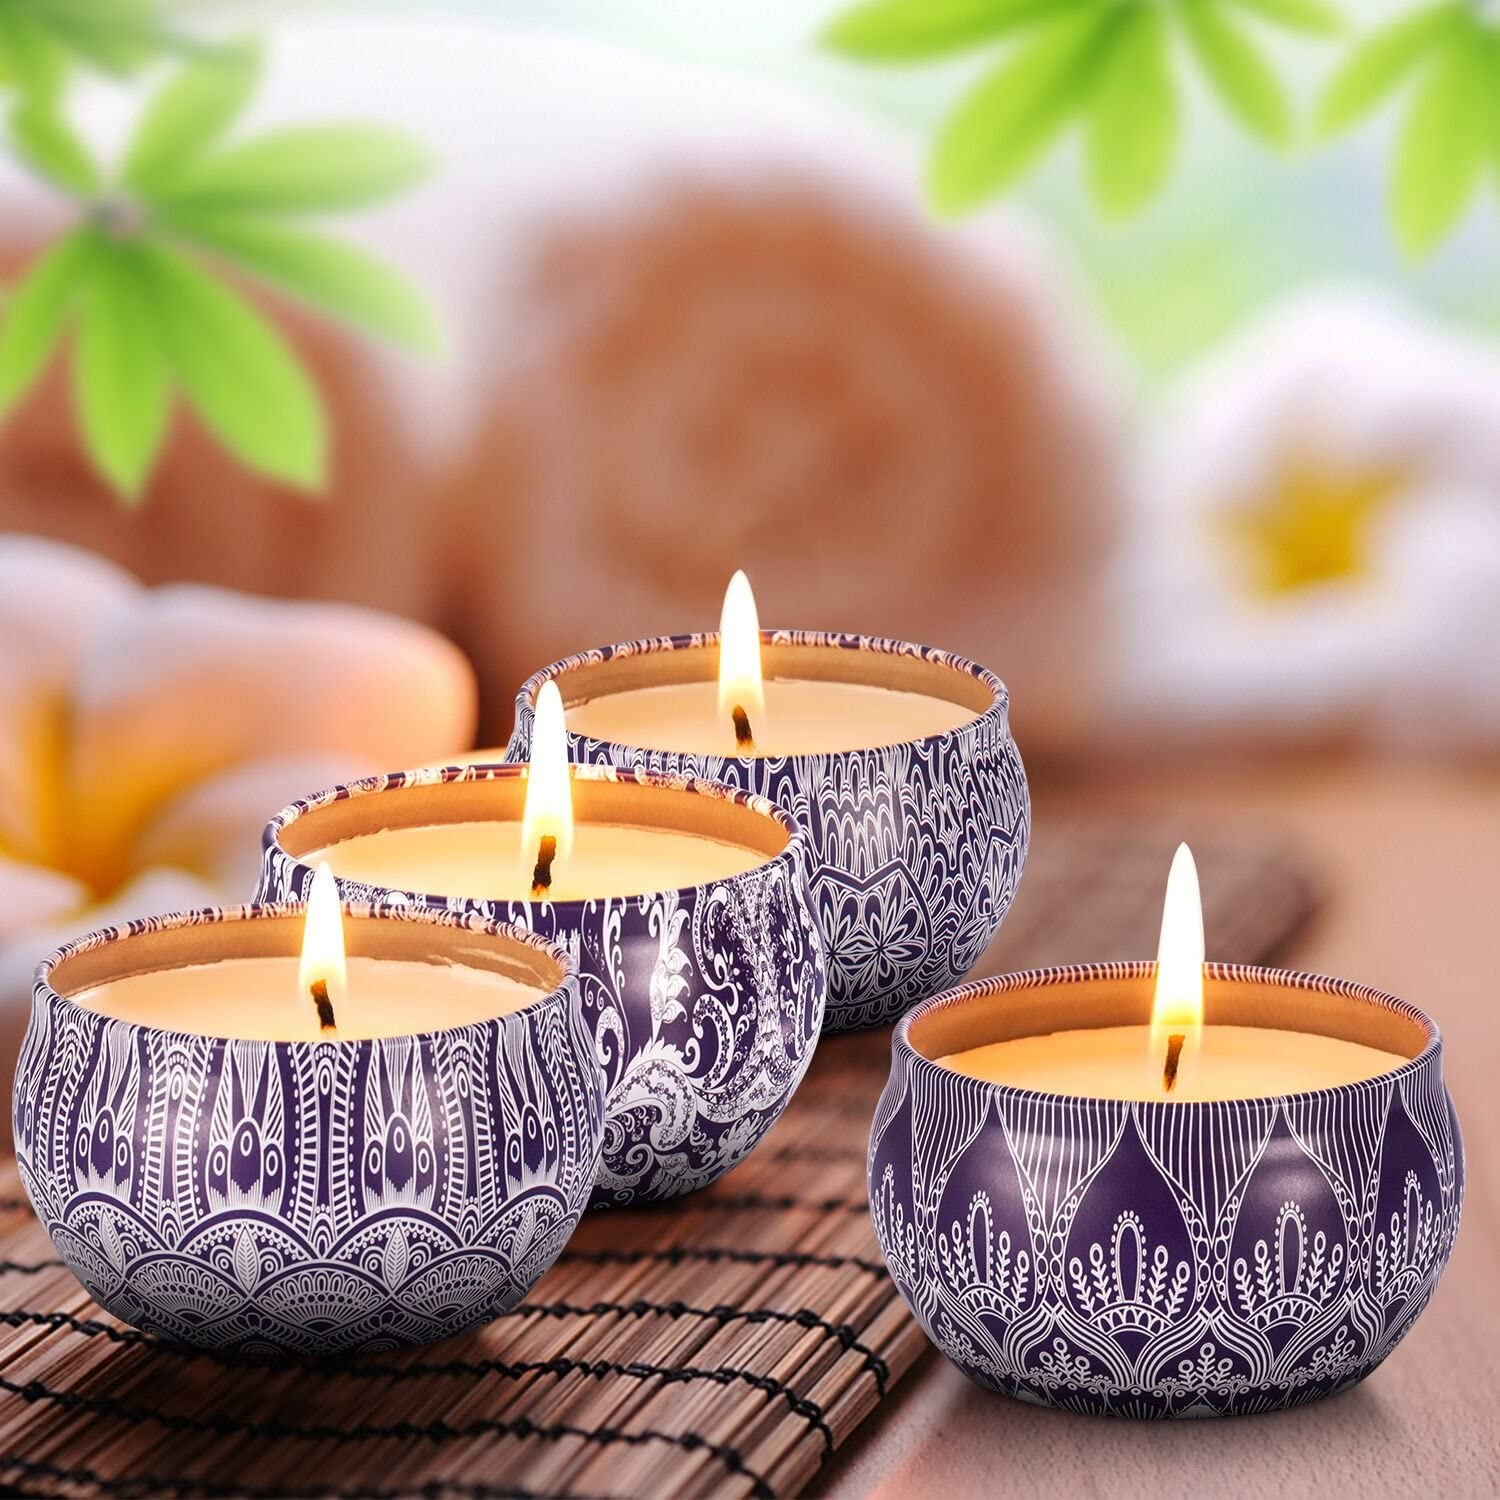 Scented Candles Blue & White Gift Set - 4 Pack Fragrance Soy Wax Candle with Aromatherapy Essential Oils - Include (Lily & Green Tea & Lilac Blossoms & Ginger Flower)